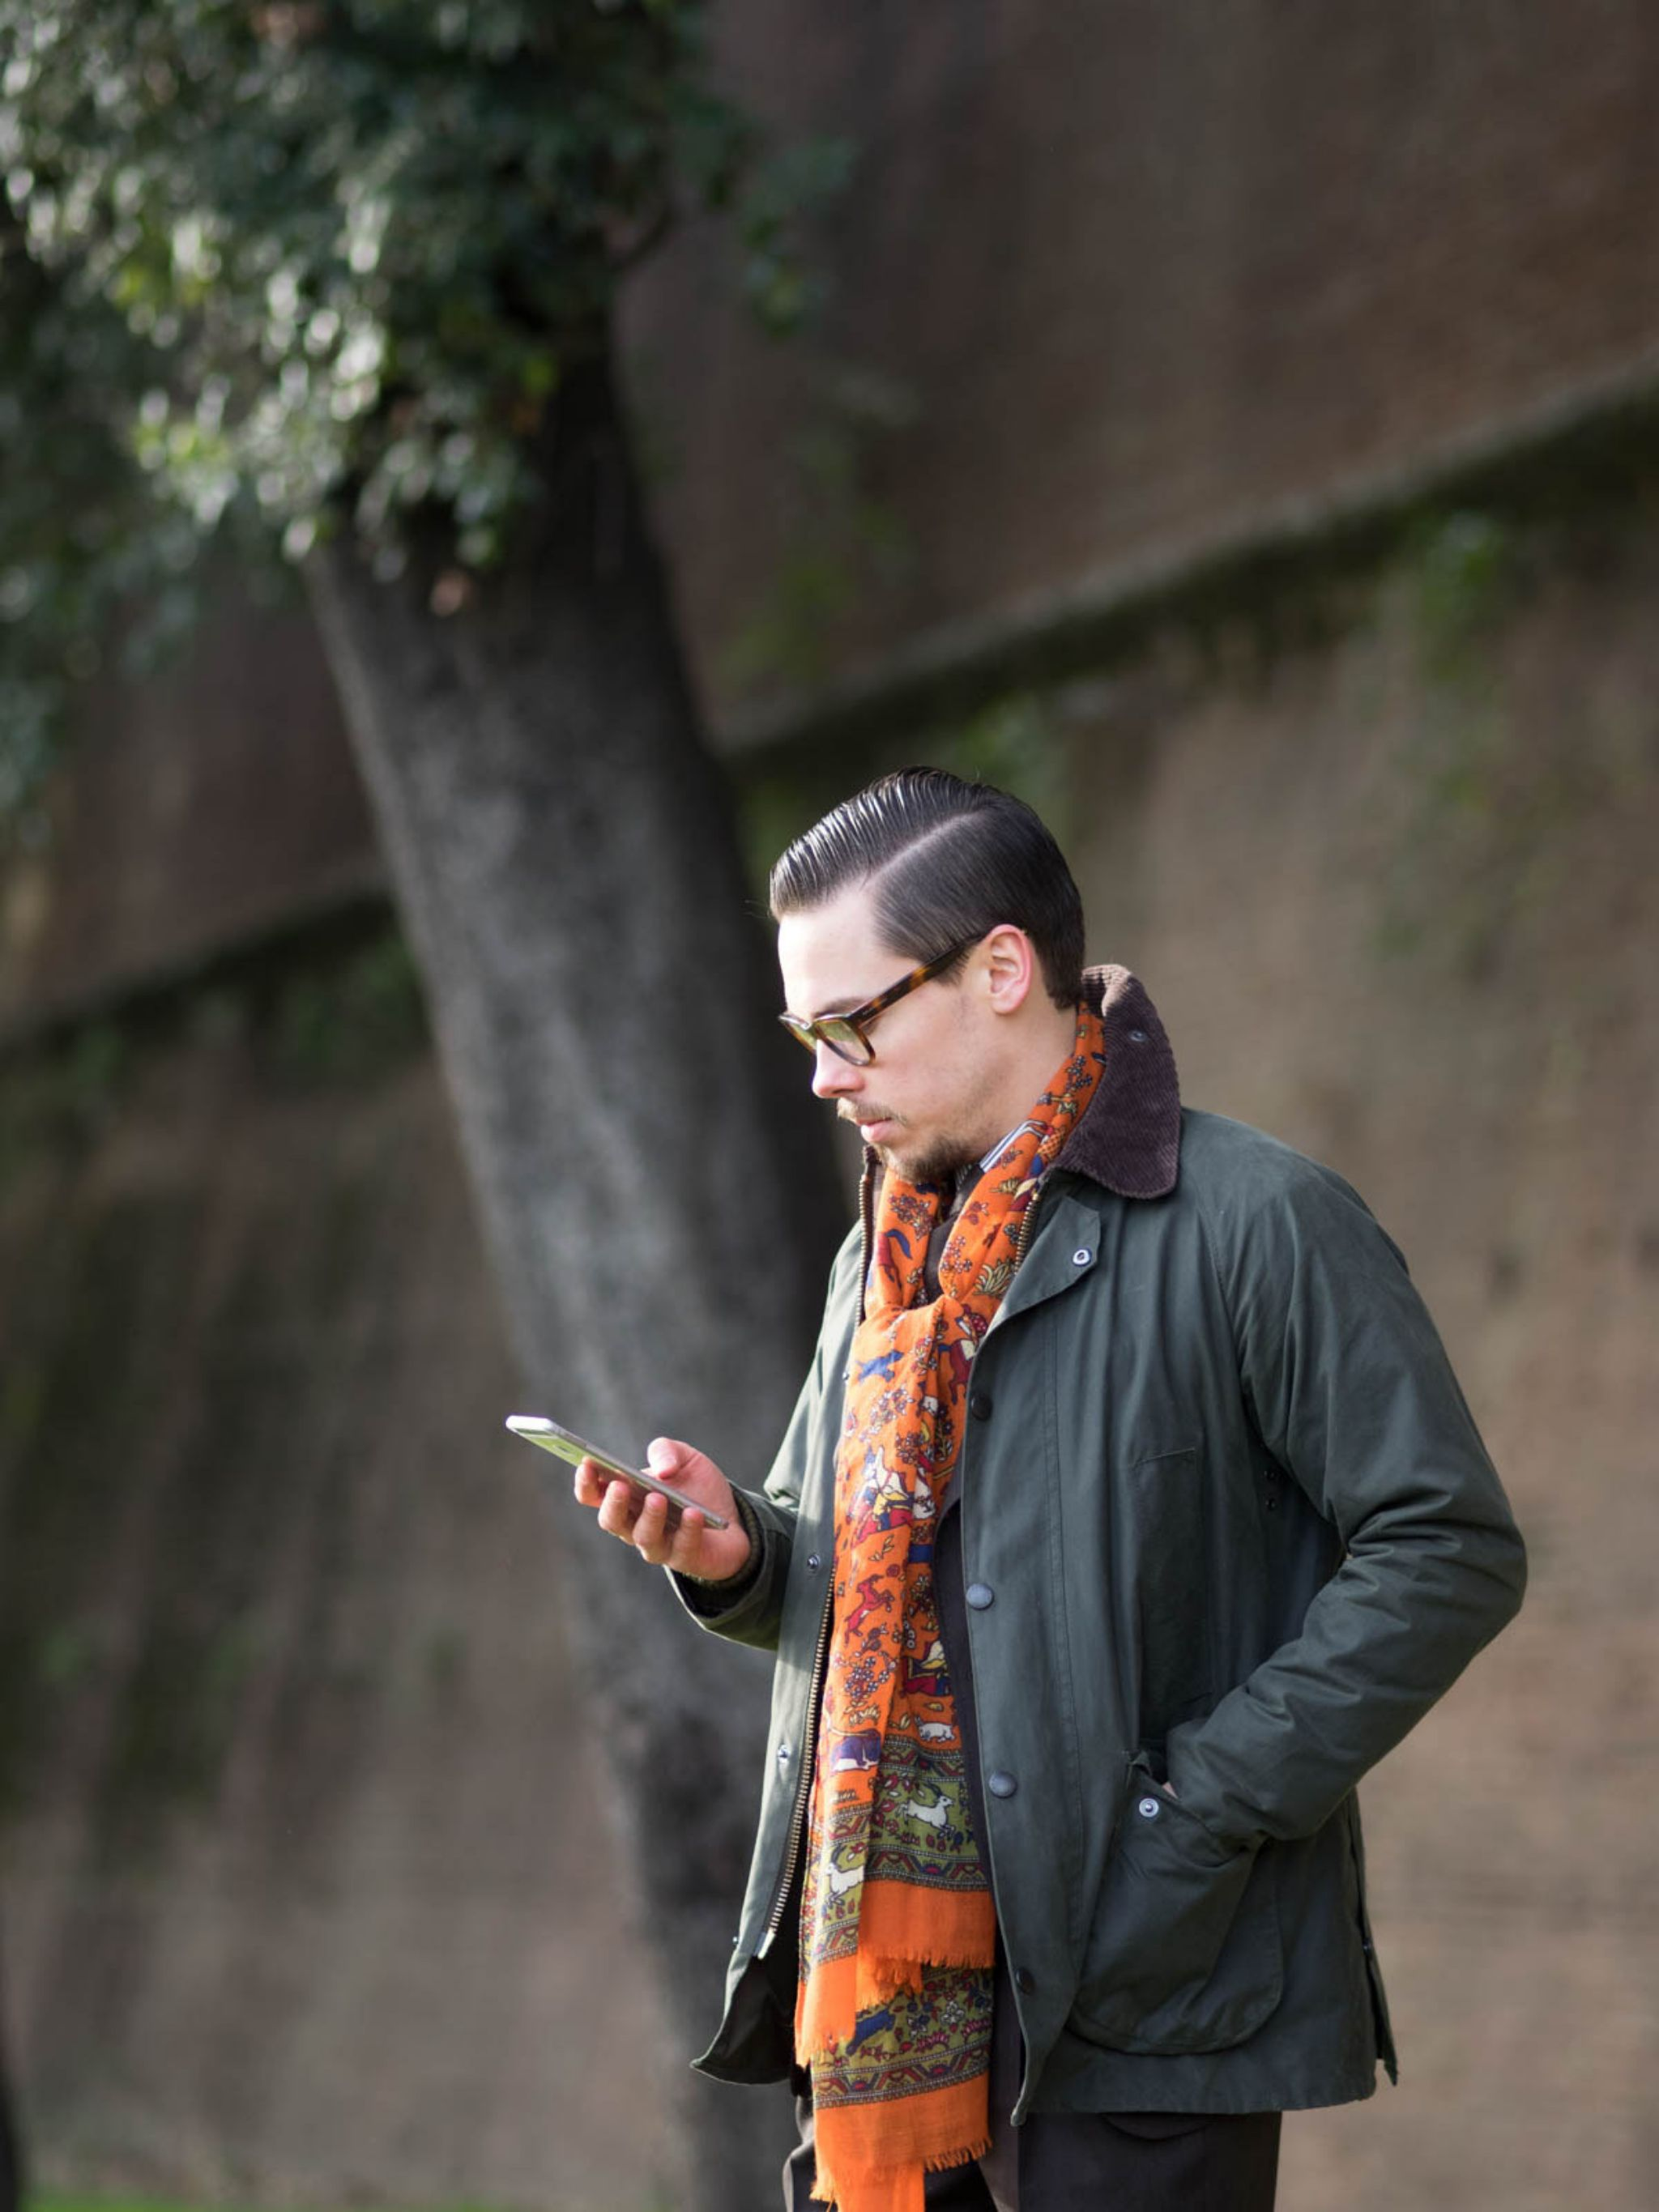 Pitti Uomo 91 DLA look book preview - Barbour Bedale SL jacket with orange scarf